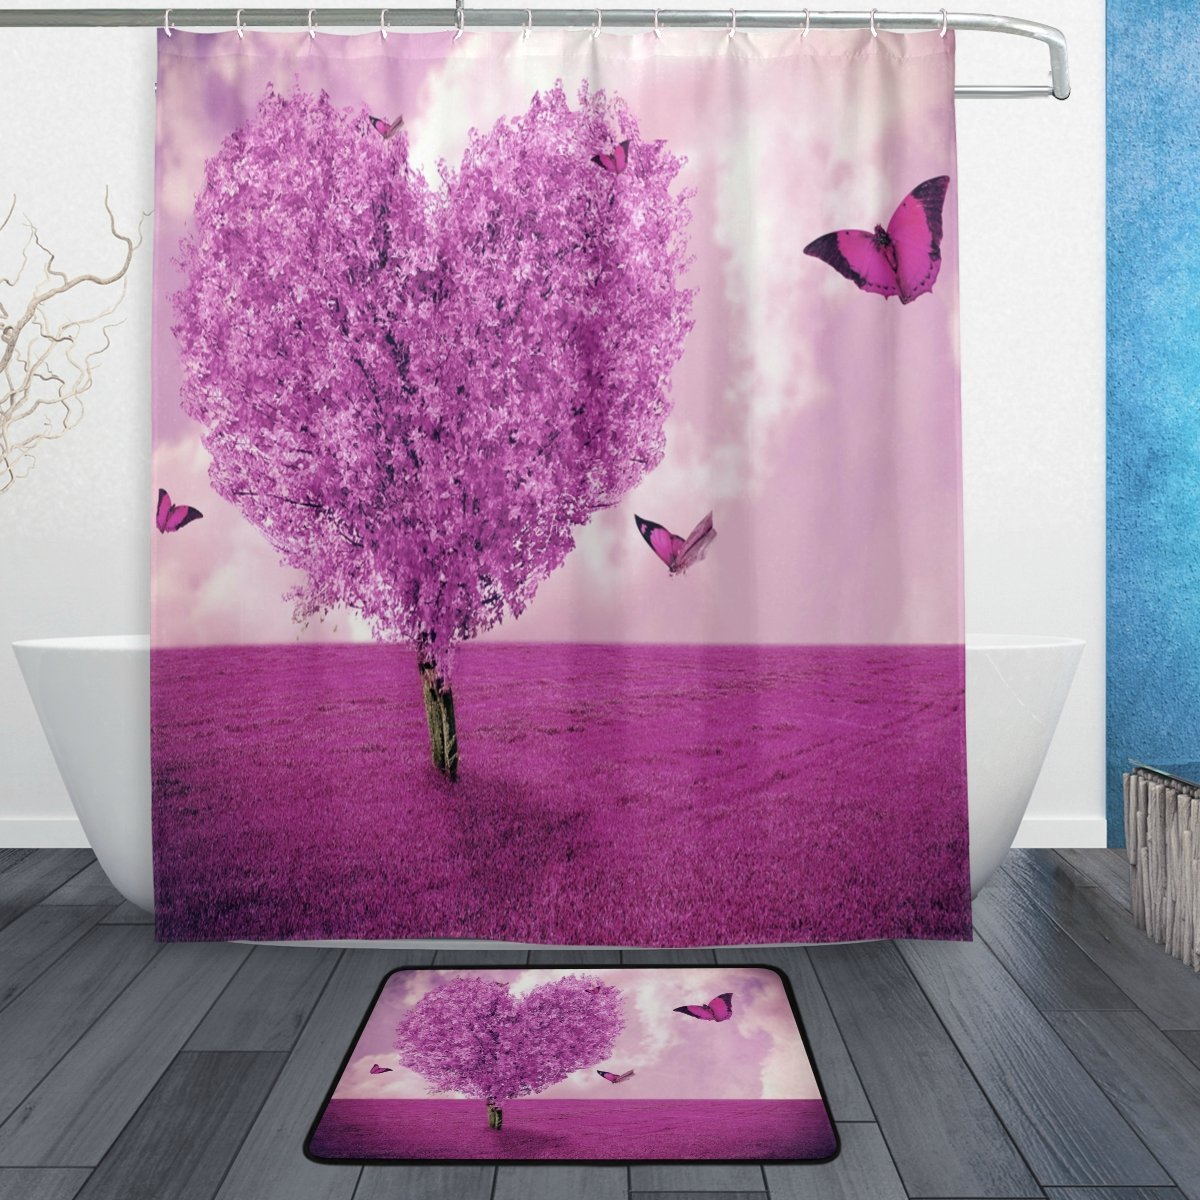 Purple Tree Heart Love Butterfly Shower Curtain and Mat Set, Romantic Valentines Day Waterproof Fabric Bathroom Curtain